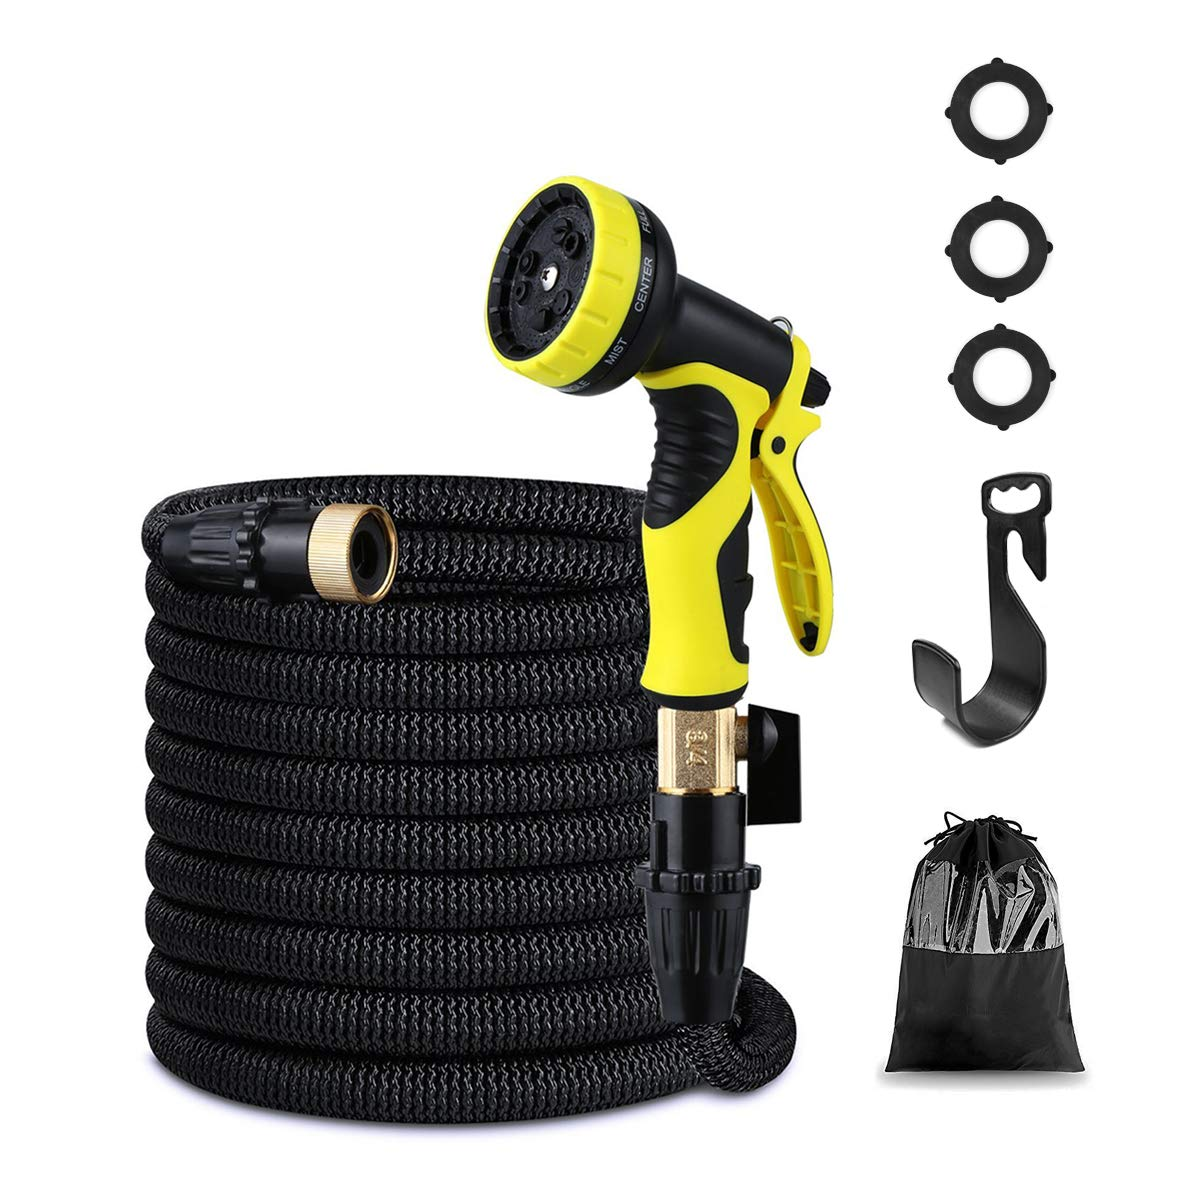 "XOOL Garden Hose 50 ft, Expanding Retractable Water Hose, Contracting Flexible Yark Outdoor Hose 9-Pattern Spray Nozzle, 3/4"" Solid Brass Fittings Double Latex Core Hose"